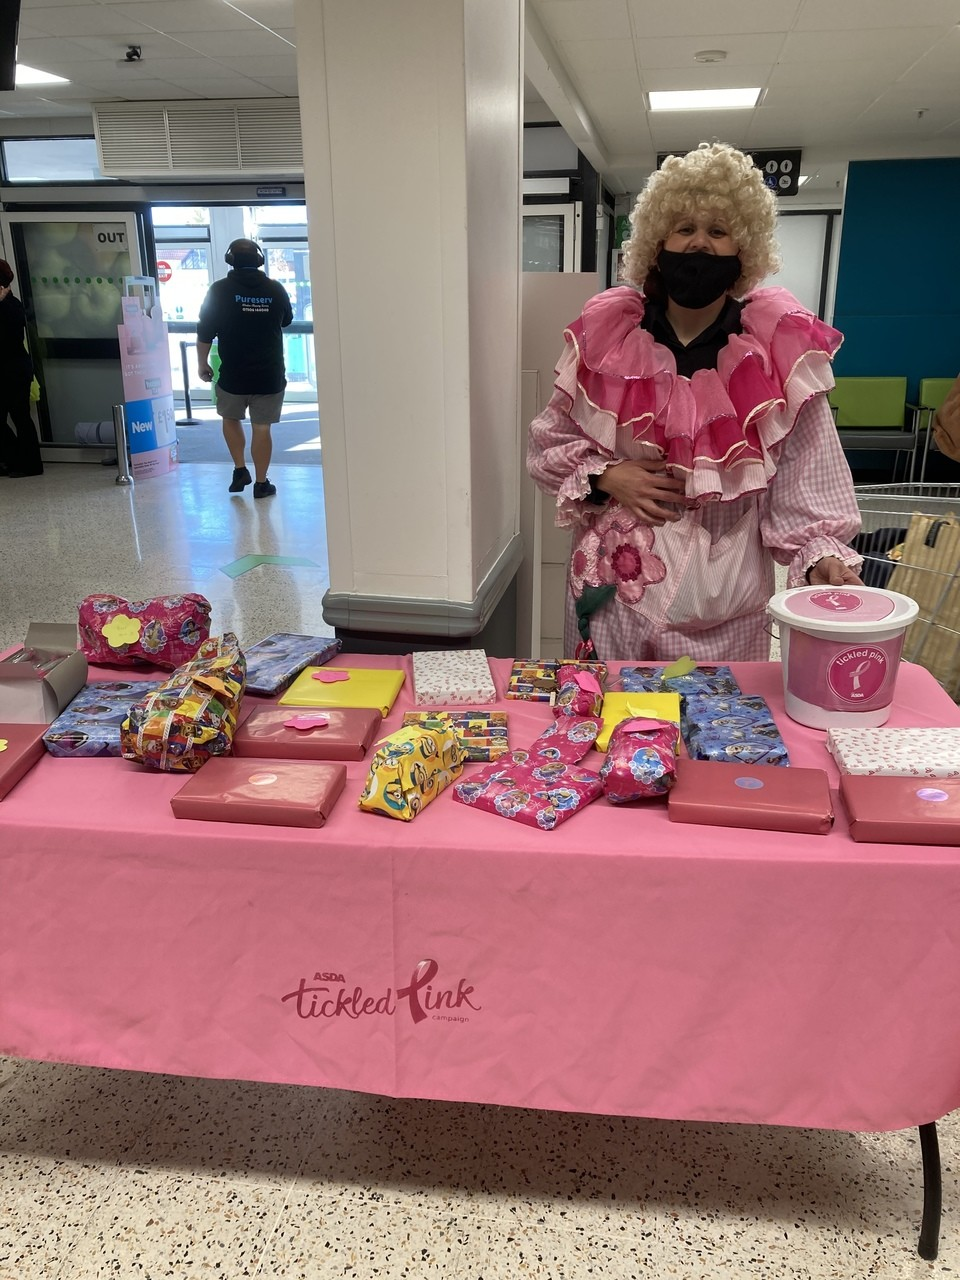 Tickled Pink lucky dip | Asda South Woodham Ferrers